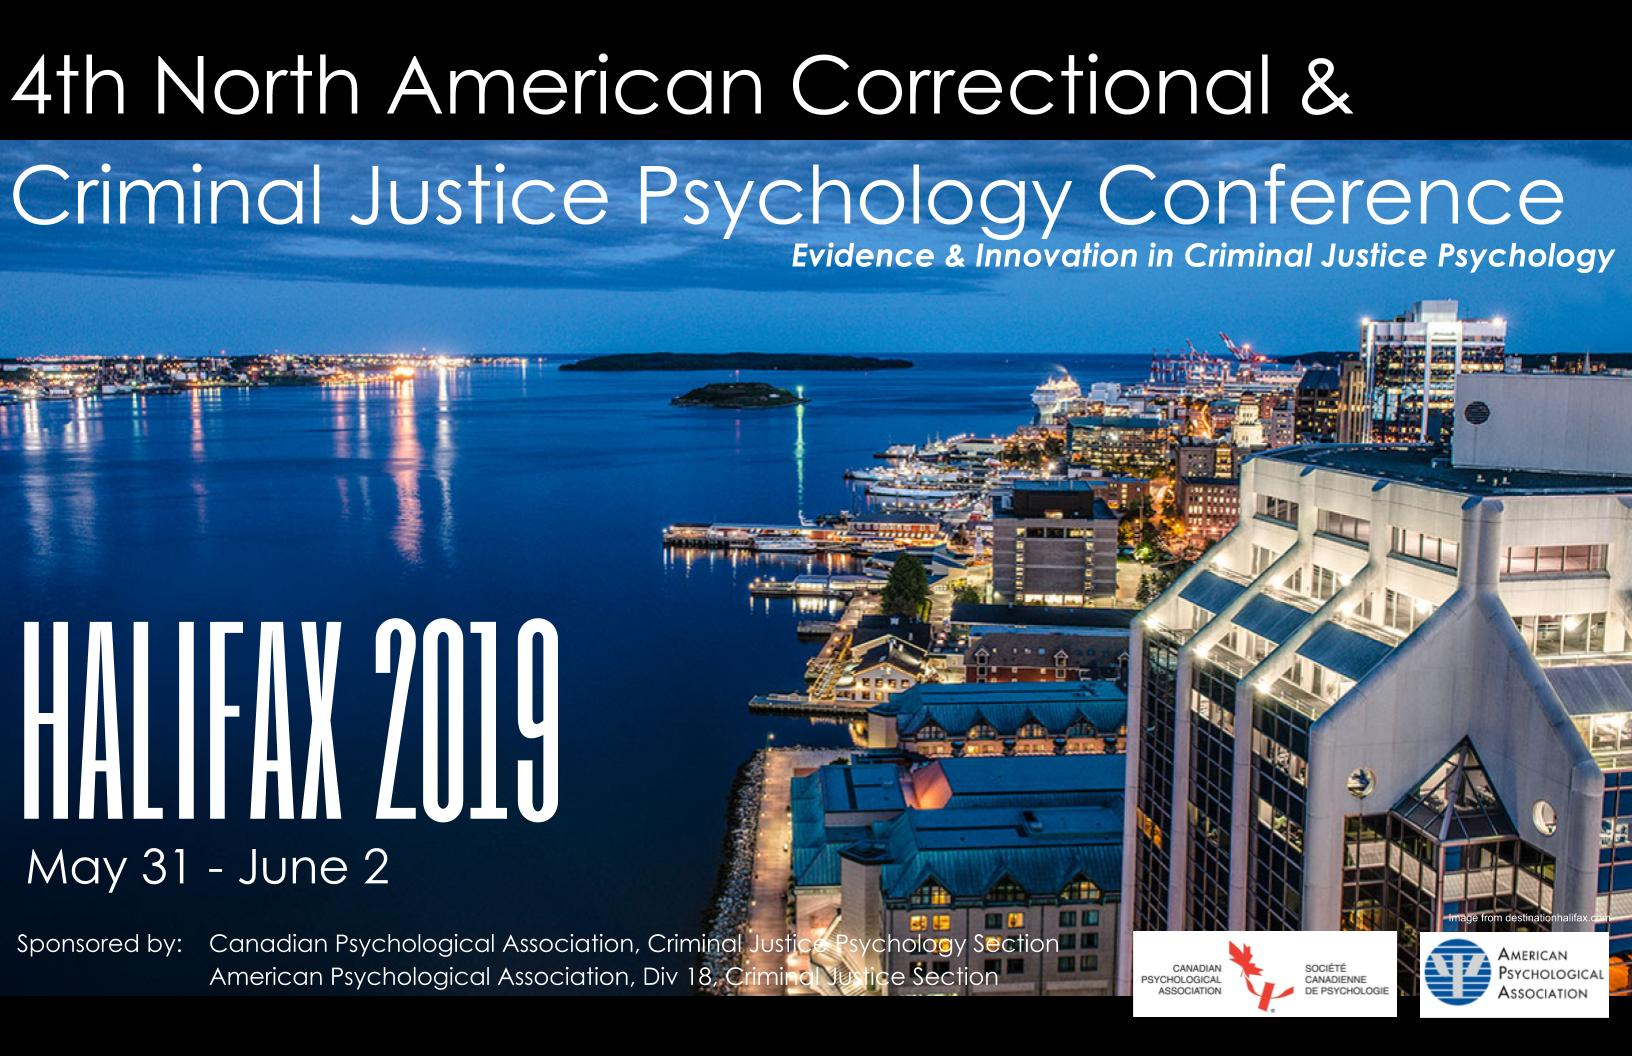 Fourth North American Correctional and Criminal Justice Psychology Conference